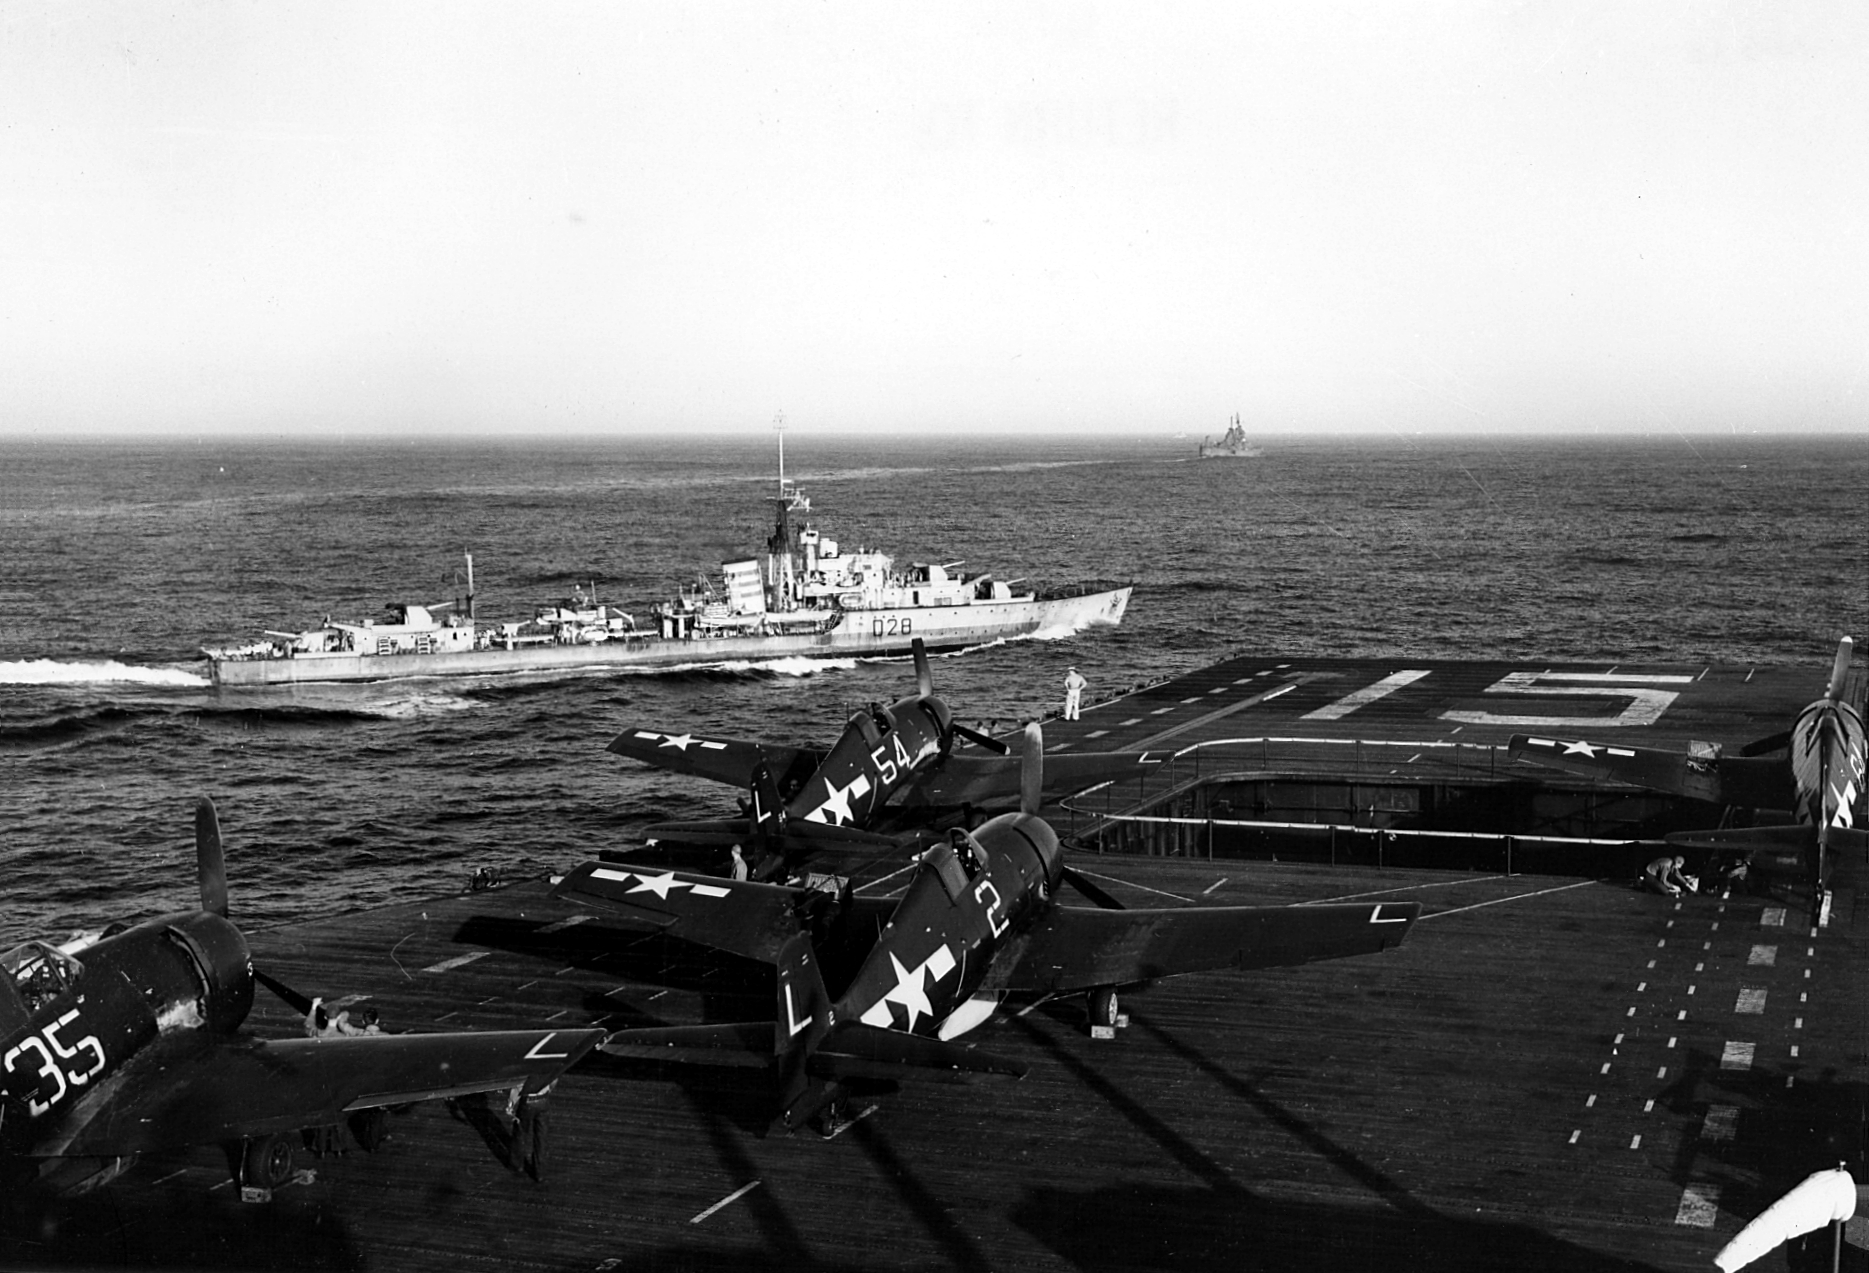 Grumman F6F 5 Hellcat VF 16 CV 15 USS Randolph and D28 HMS Urchin off Japan 1945 01